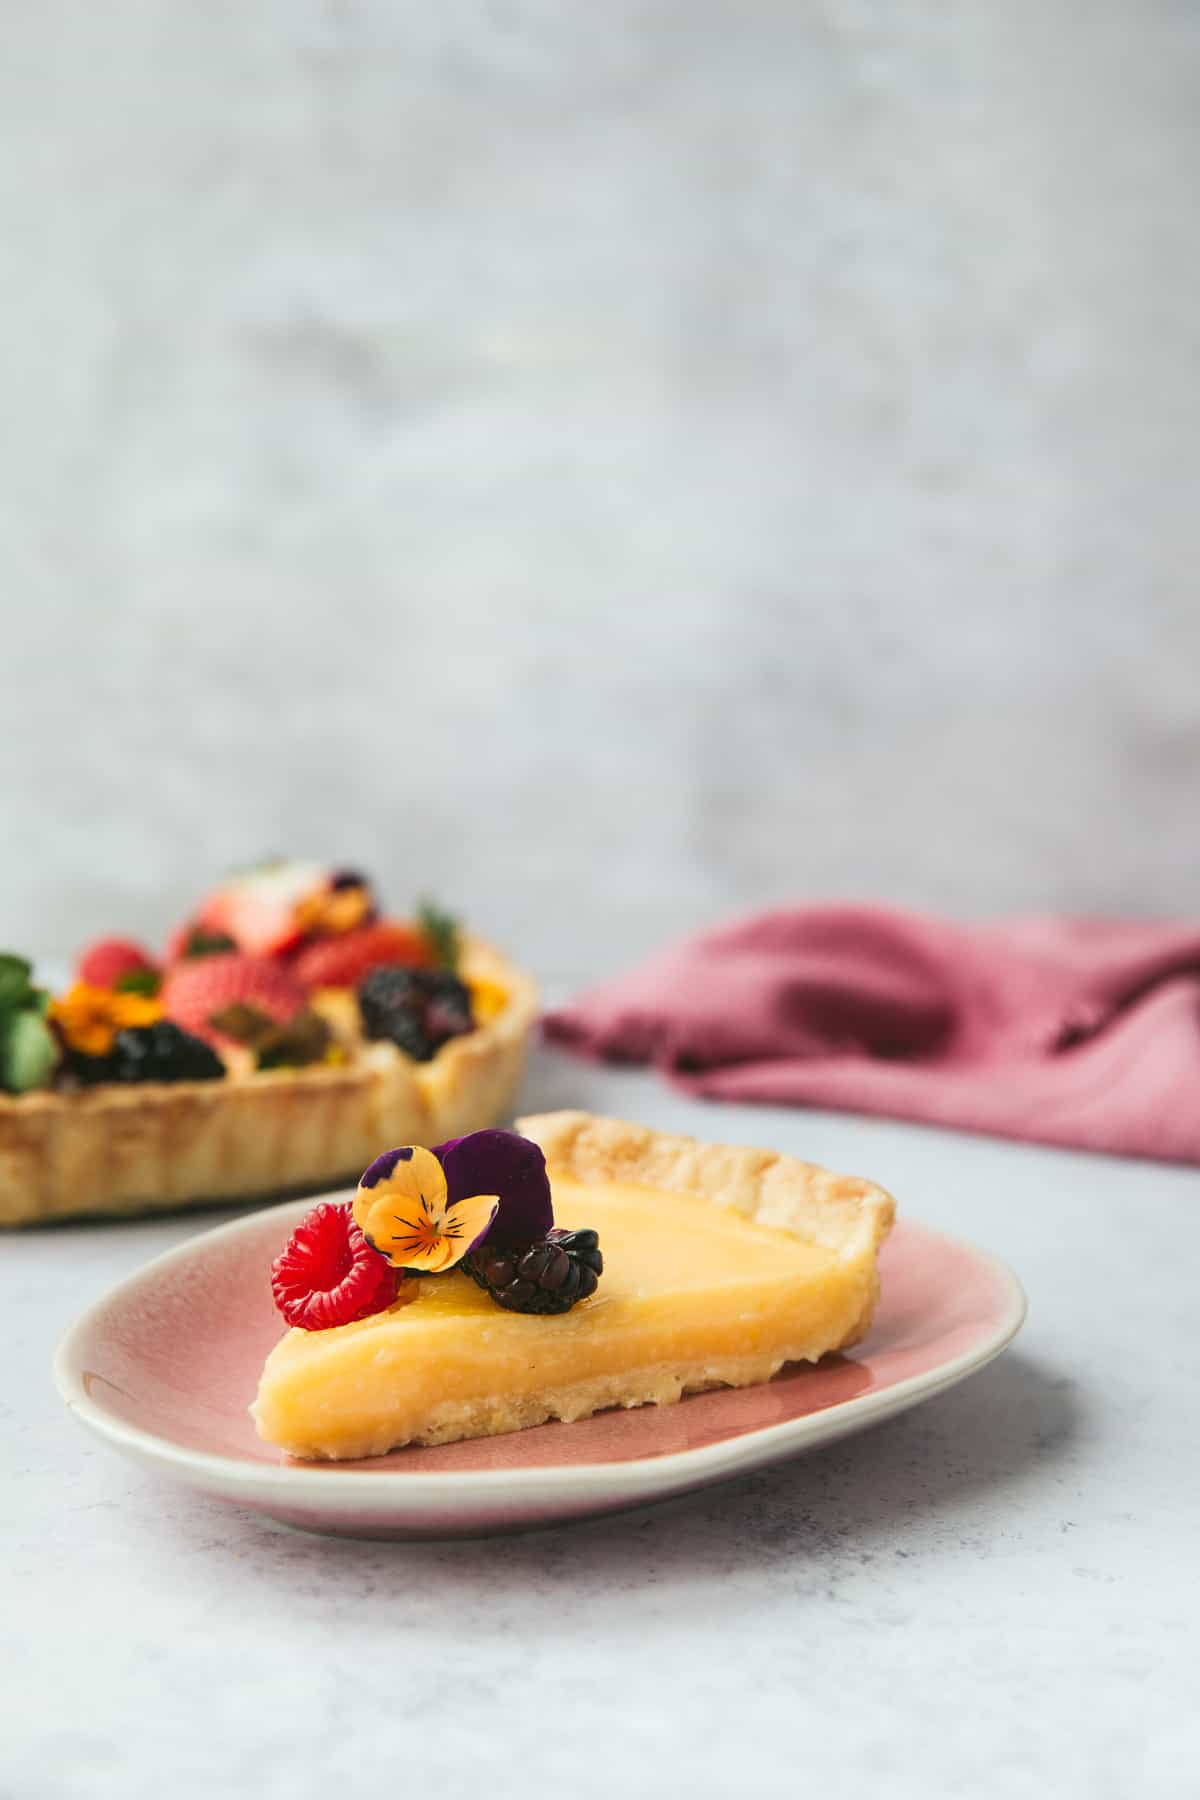 A slice of lemon tart on a small pink plate.